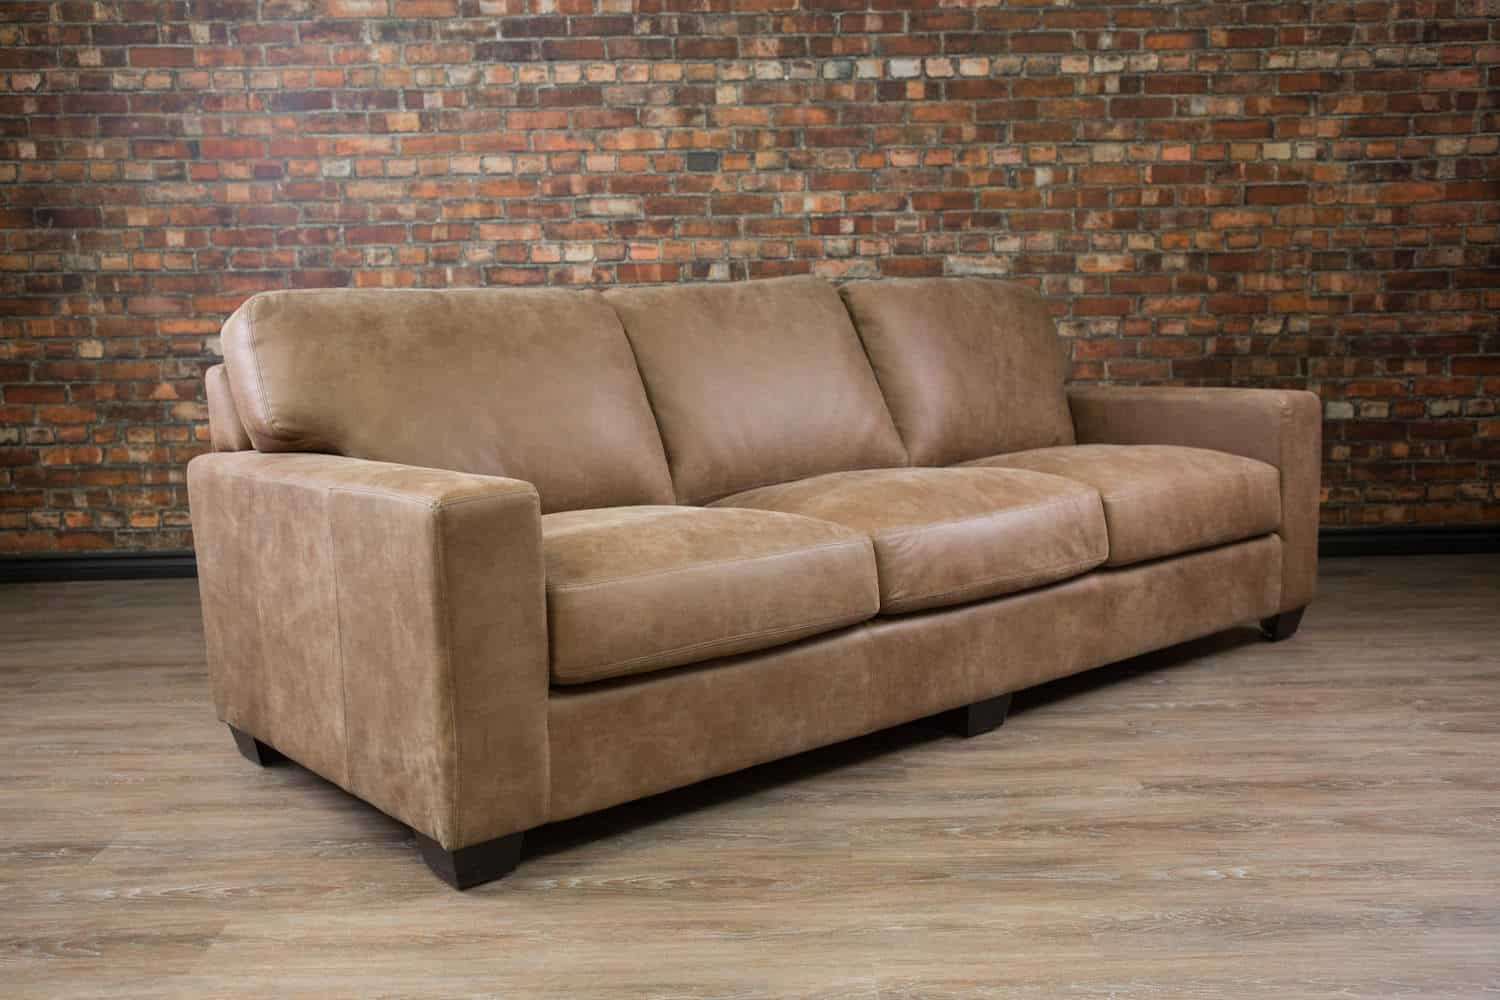 Maxell Leather Sofa Canada S Boss Leather Sofas And